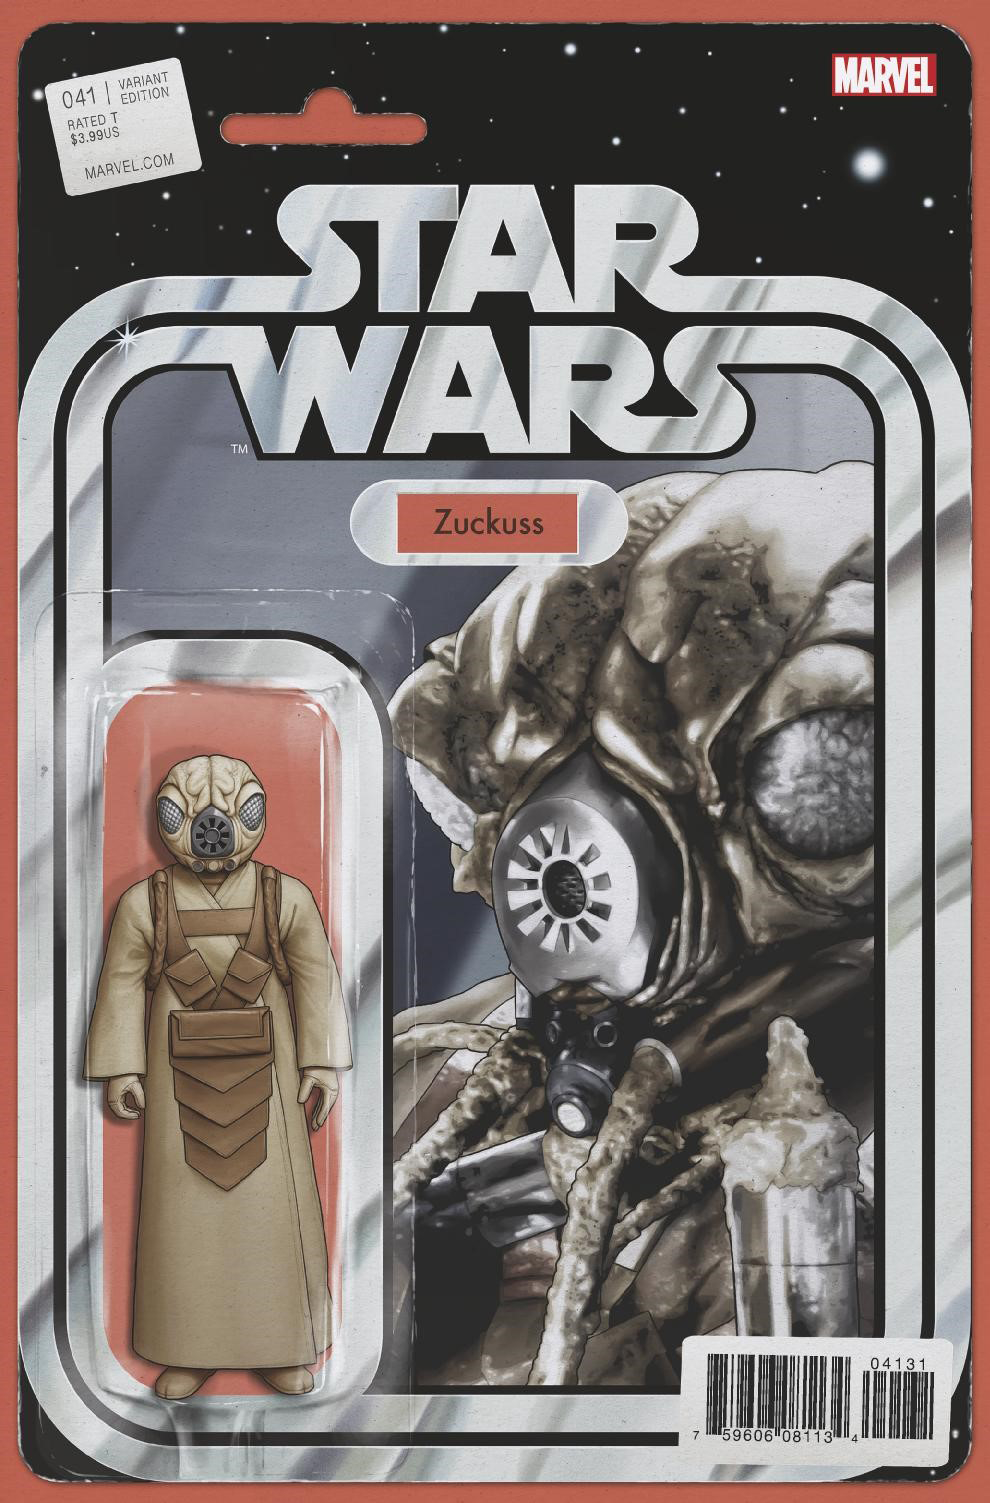 Star Wars #41 (Action Figure Variant Cover) (03.01.2018)